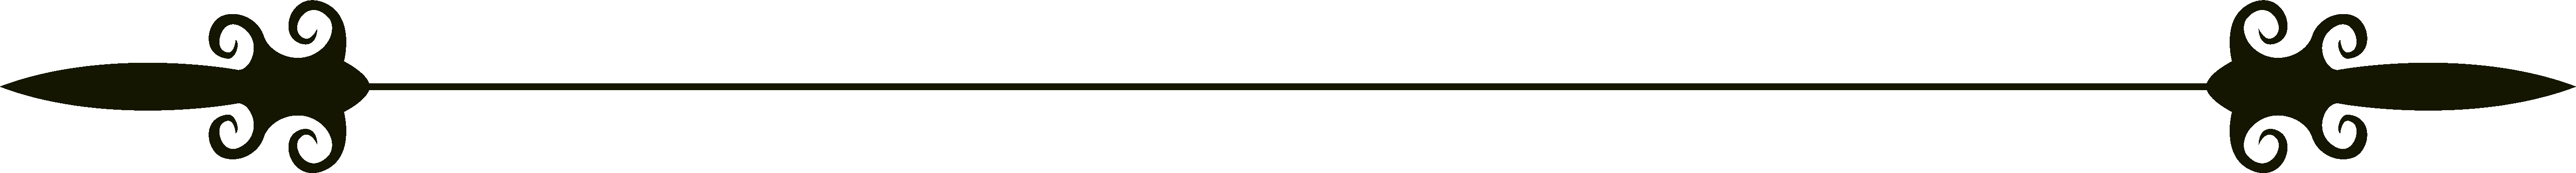 Decorative line divider png. Collection of page